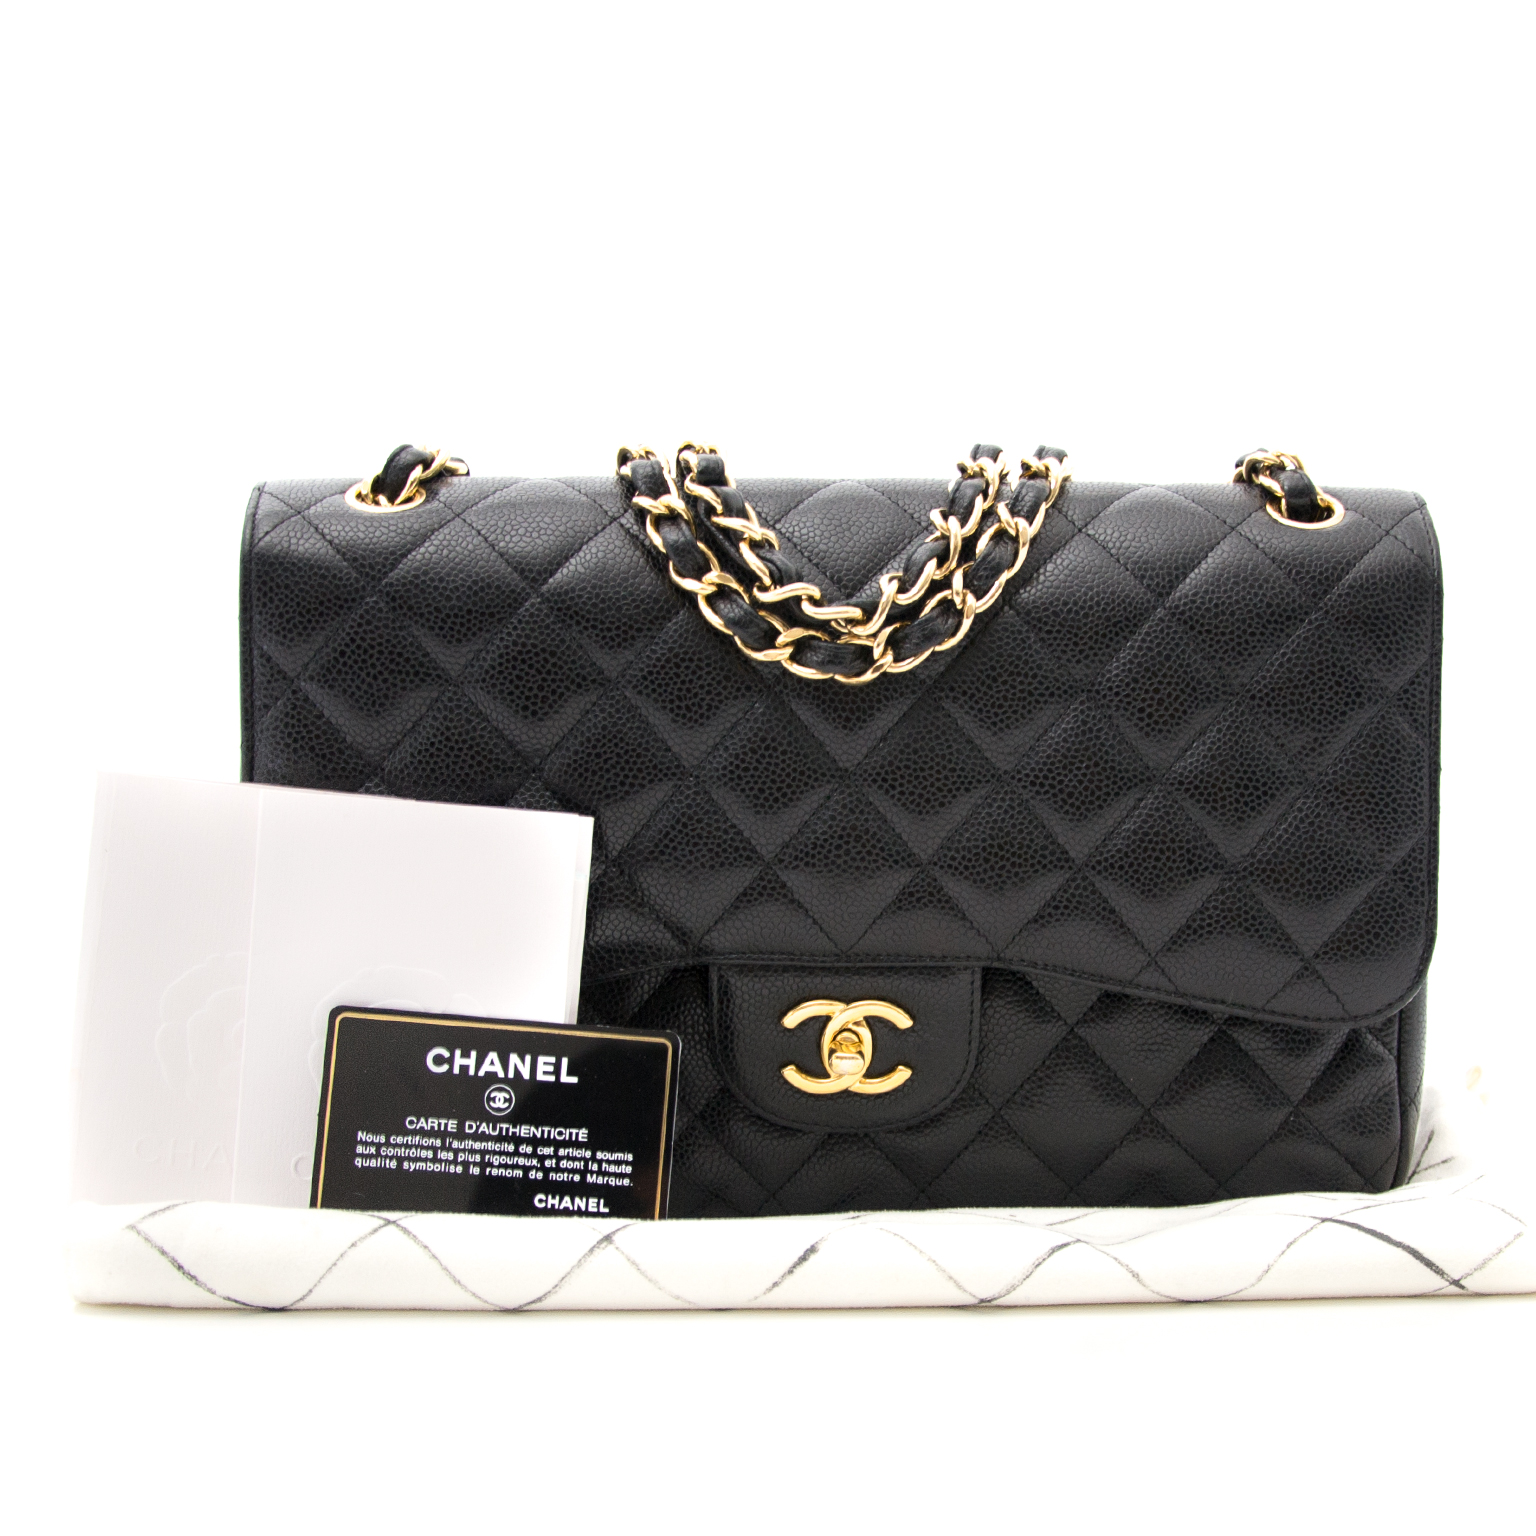 2c1a480fd16f26 ... Chanel classic flap bag now for the best price online at labellov.com